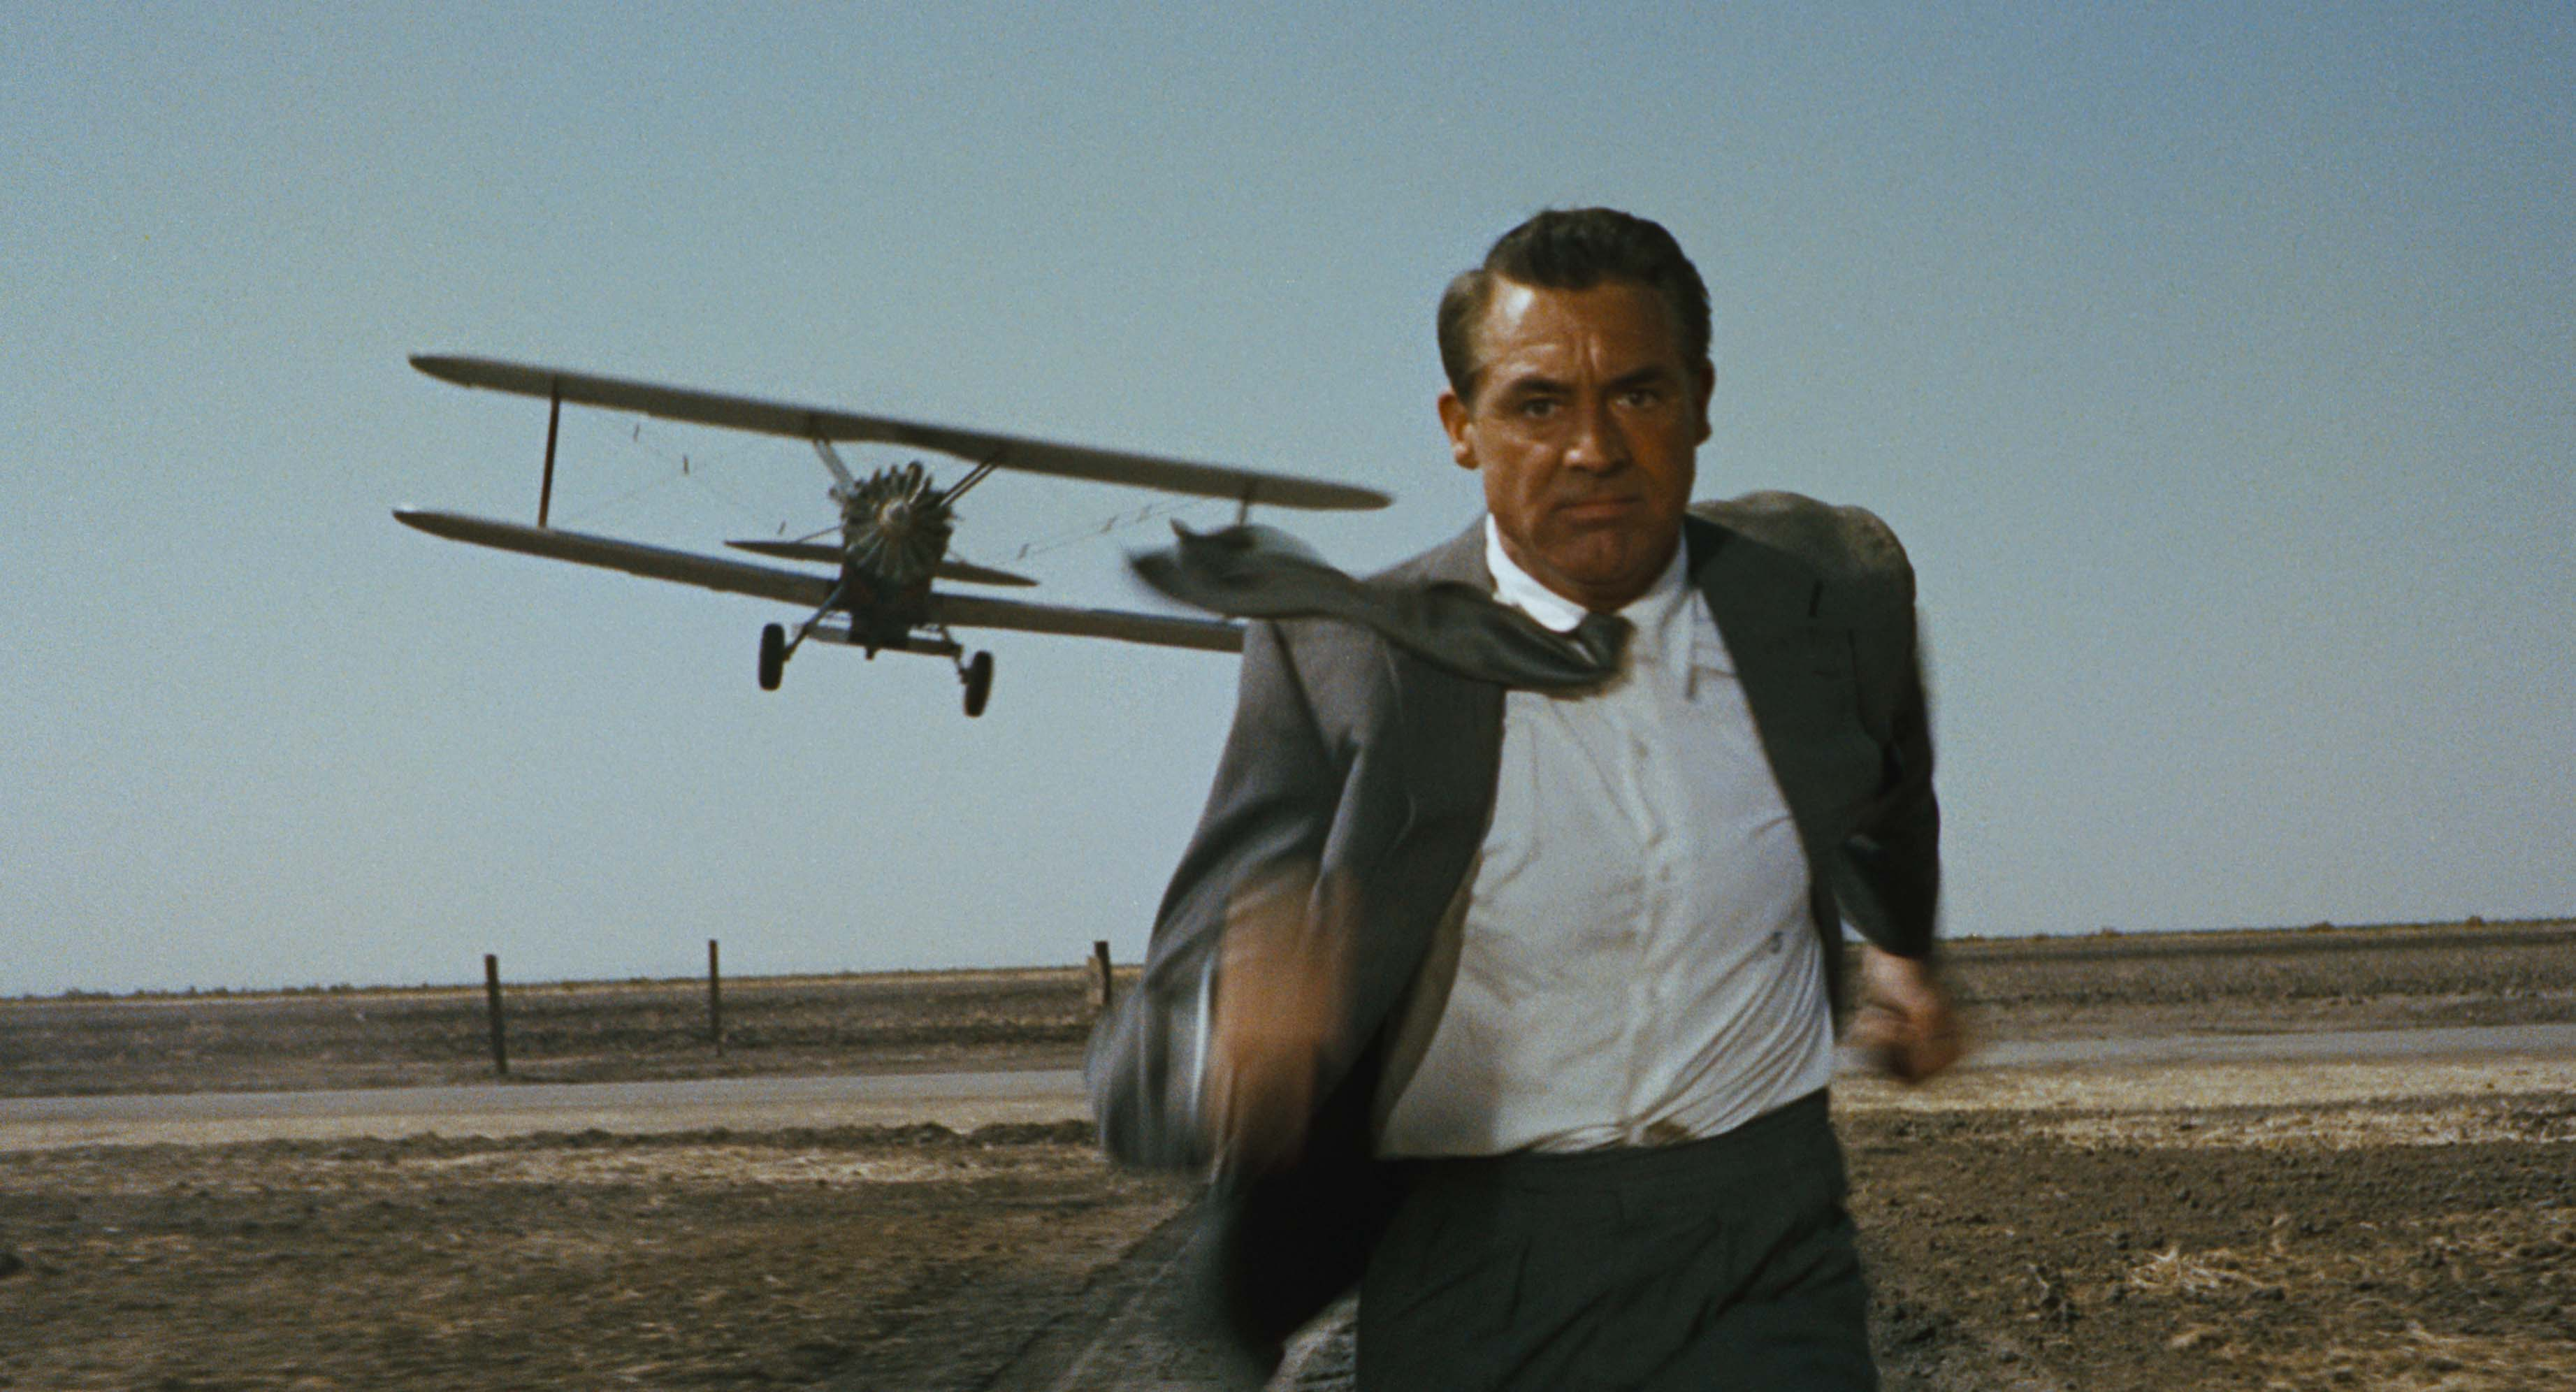 North by Northwest ©1959 – All rights reserved. Courtesy Warner Bros. Home Entertainment, Inc.